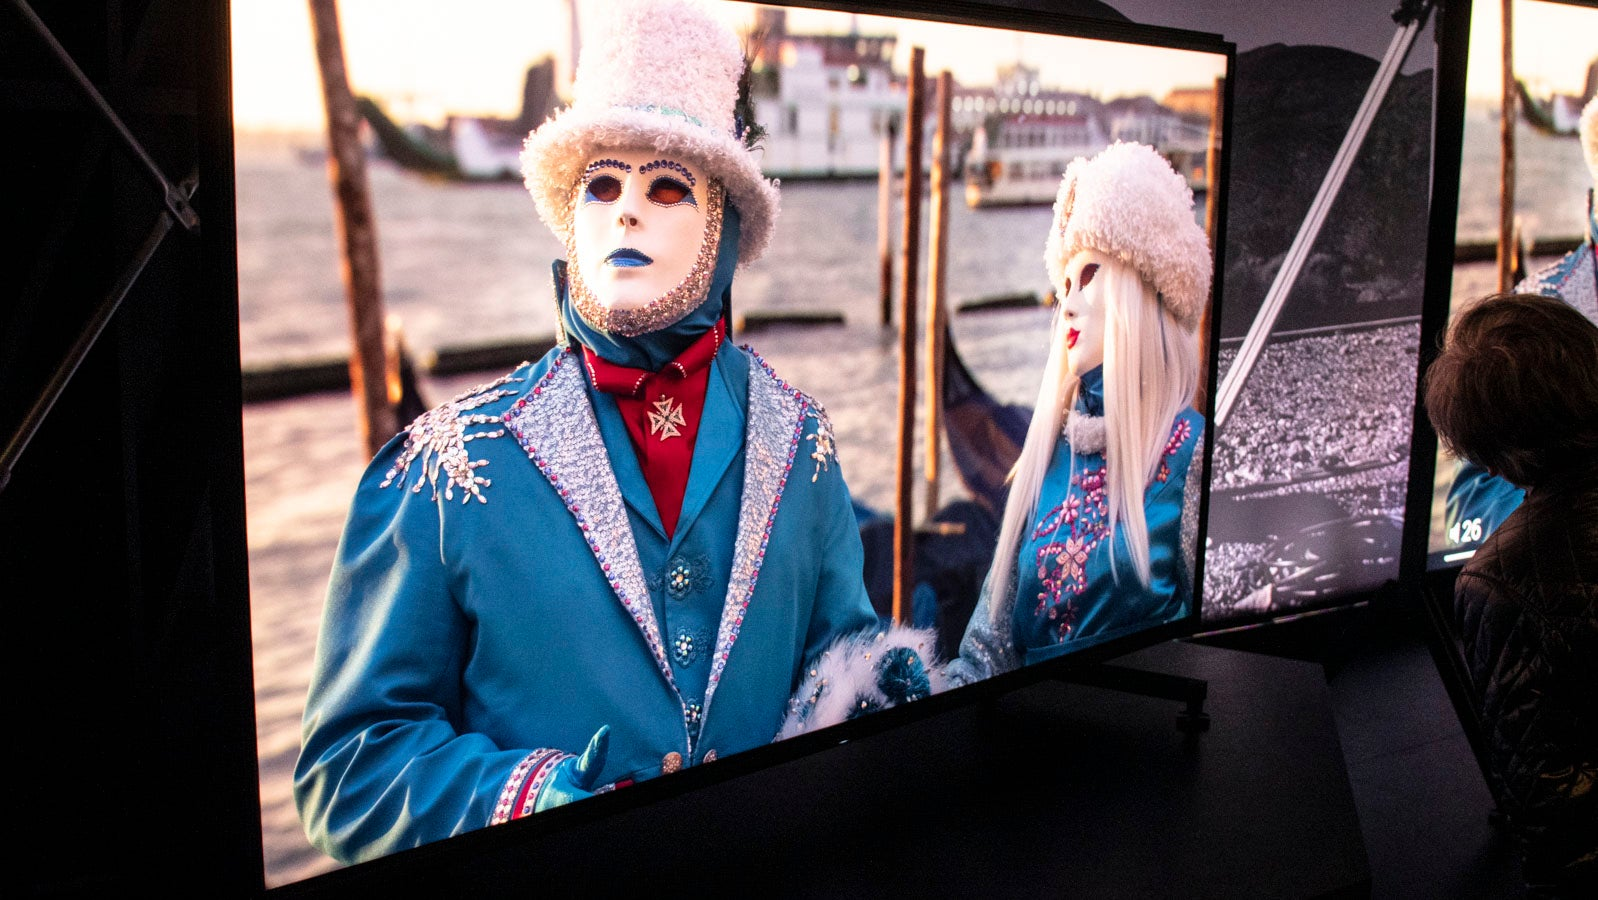 OK, This Argument For 8K TVs Is Kinda Convincing